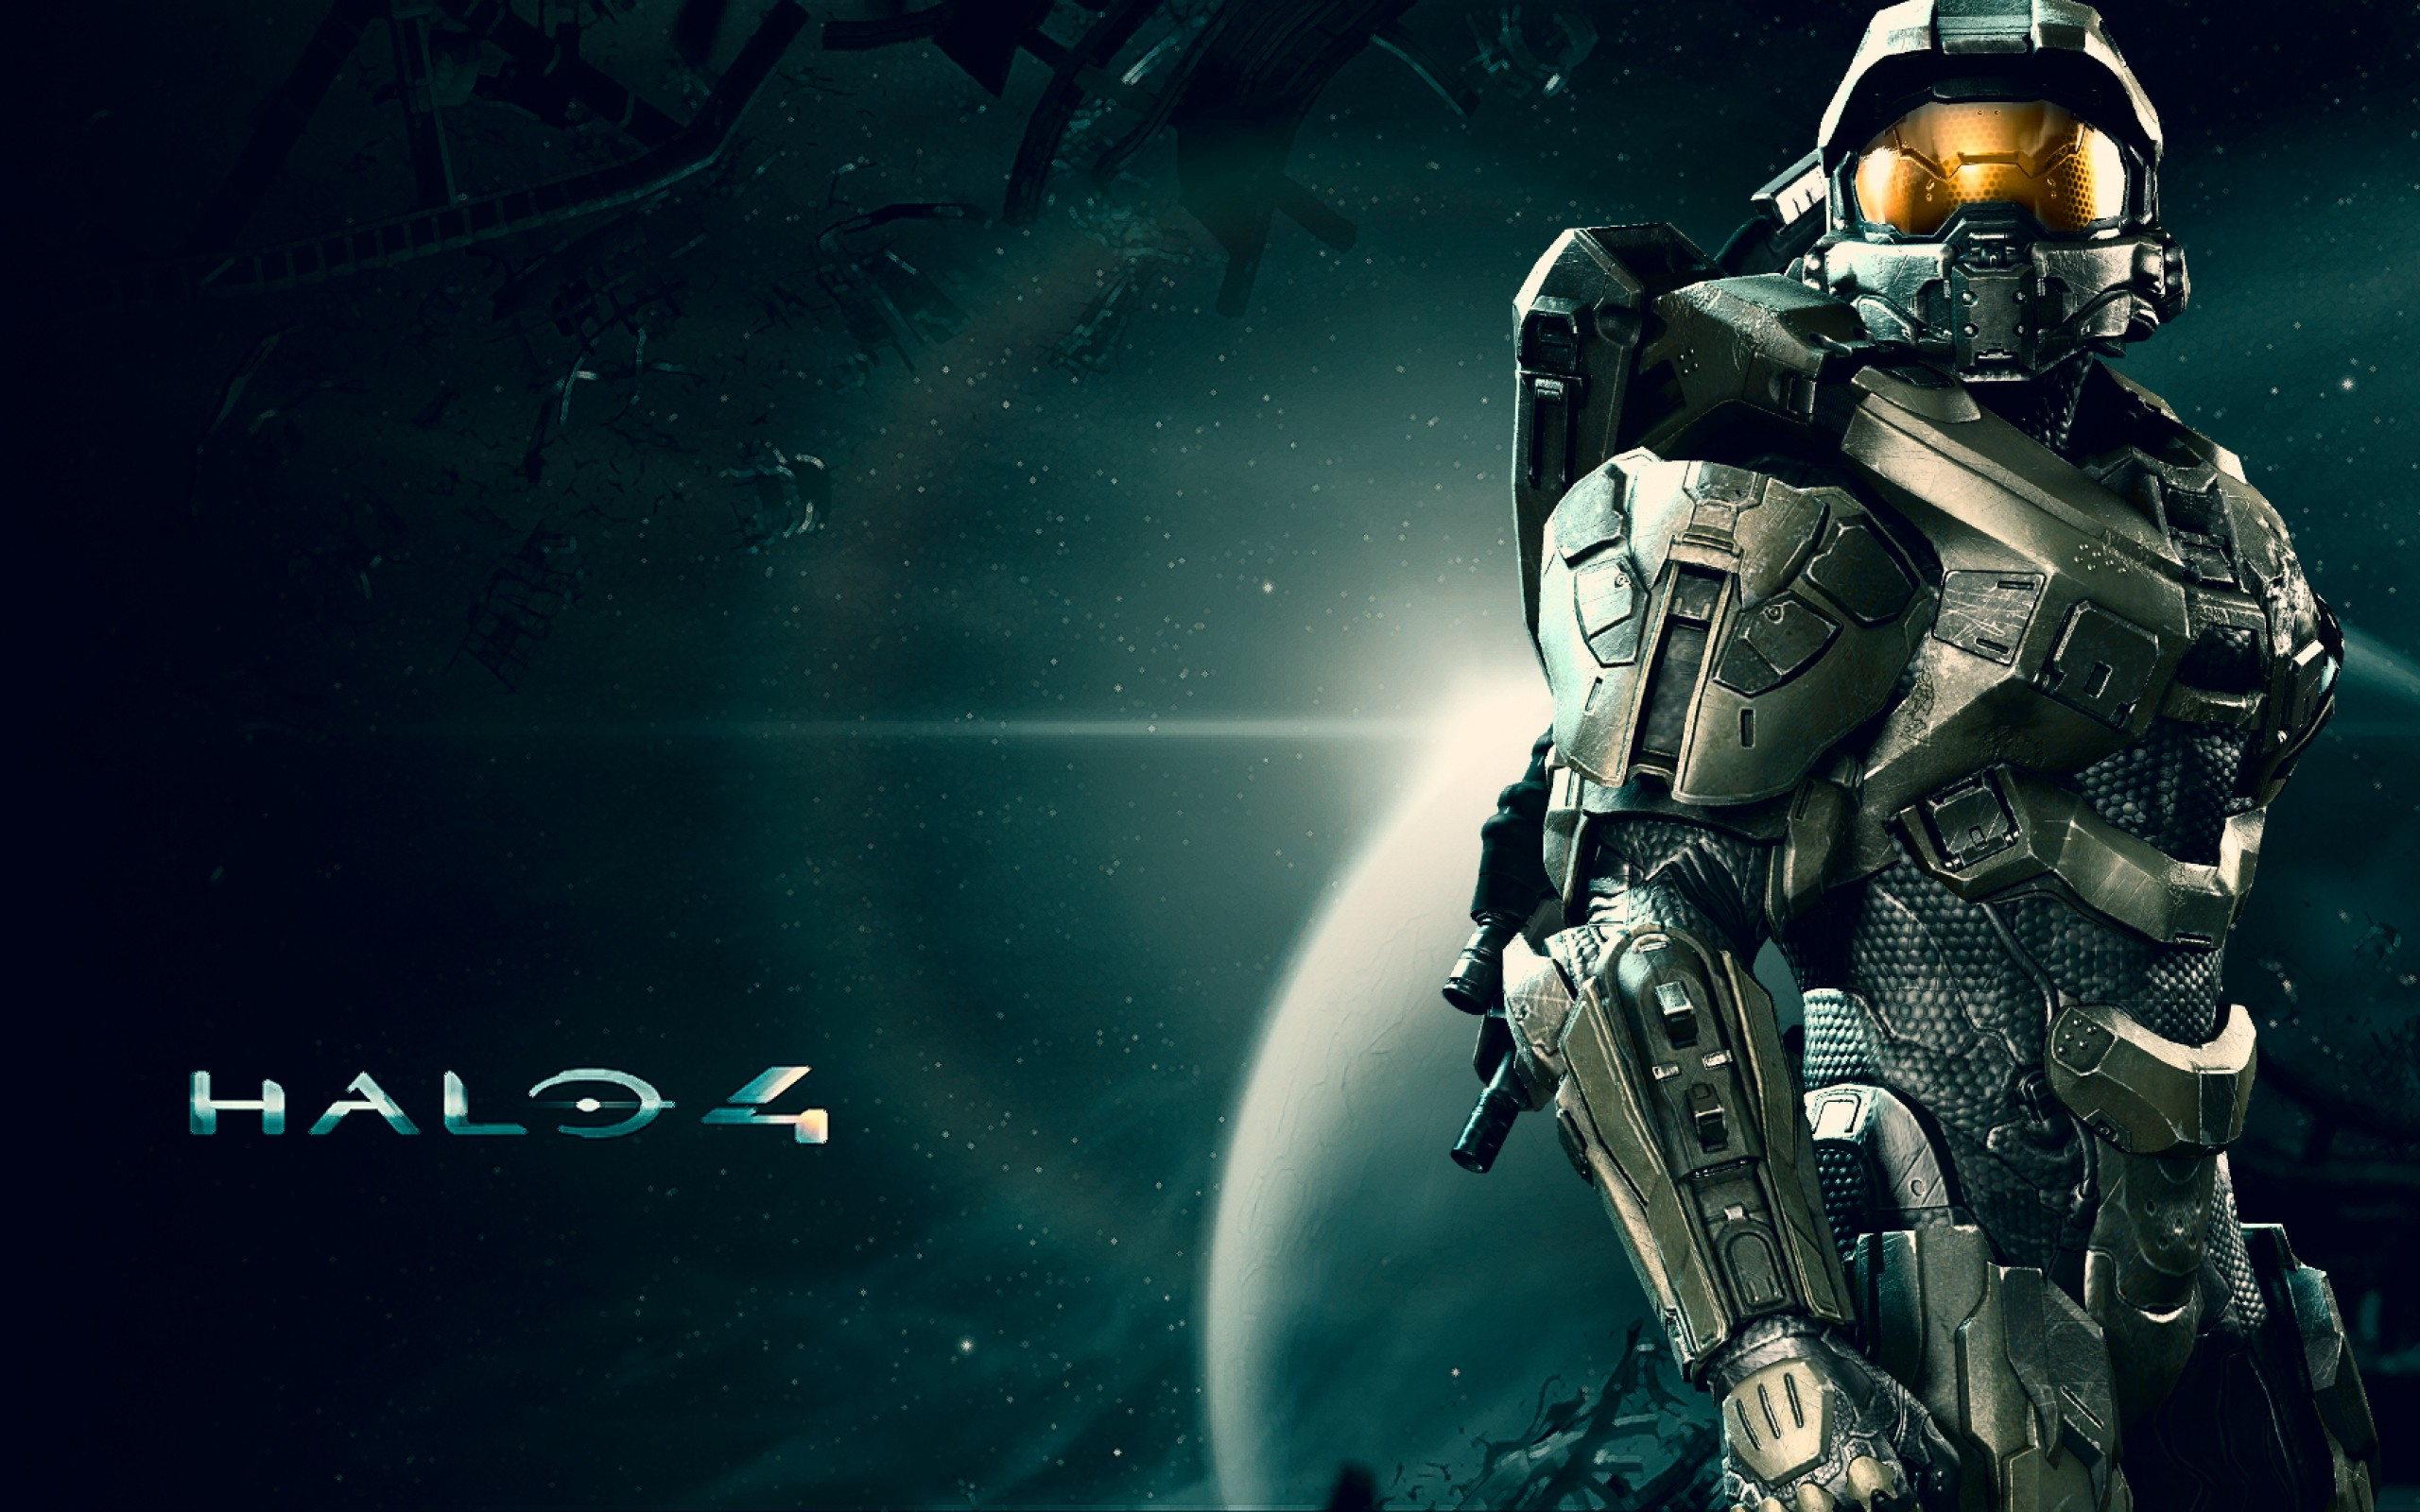 Halo 4 Wallpaper High Definition 7823 Wallpaper Cool Walldiskpaper 2560x1600